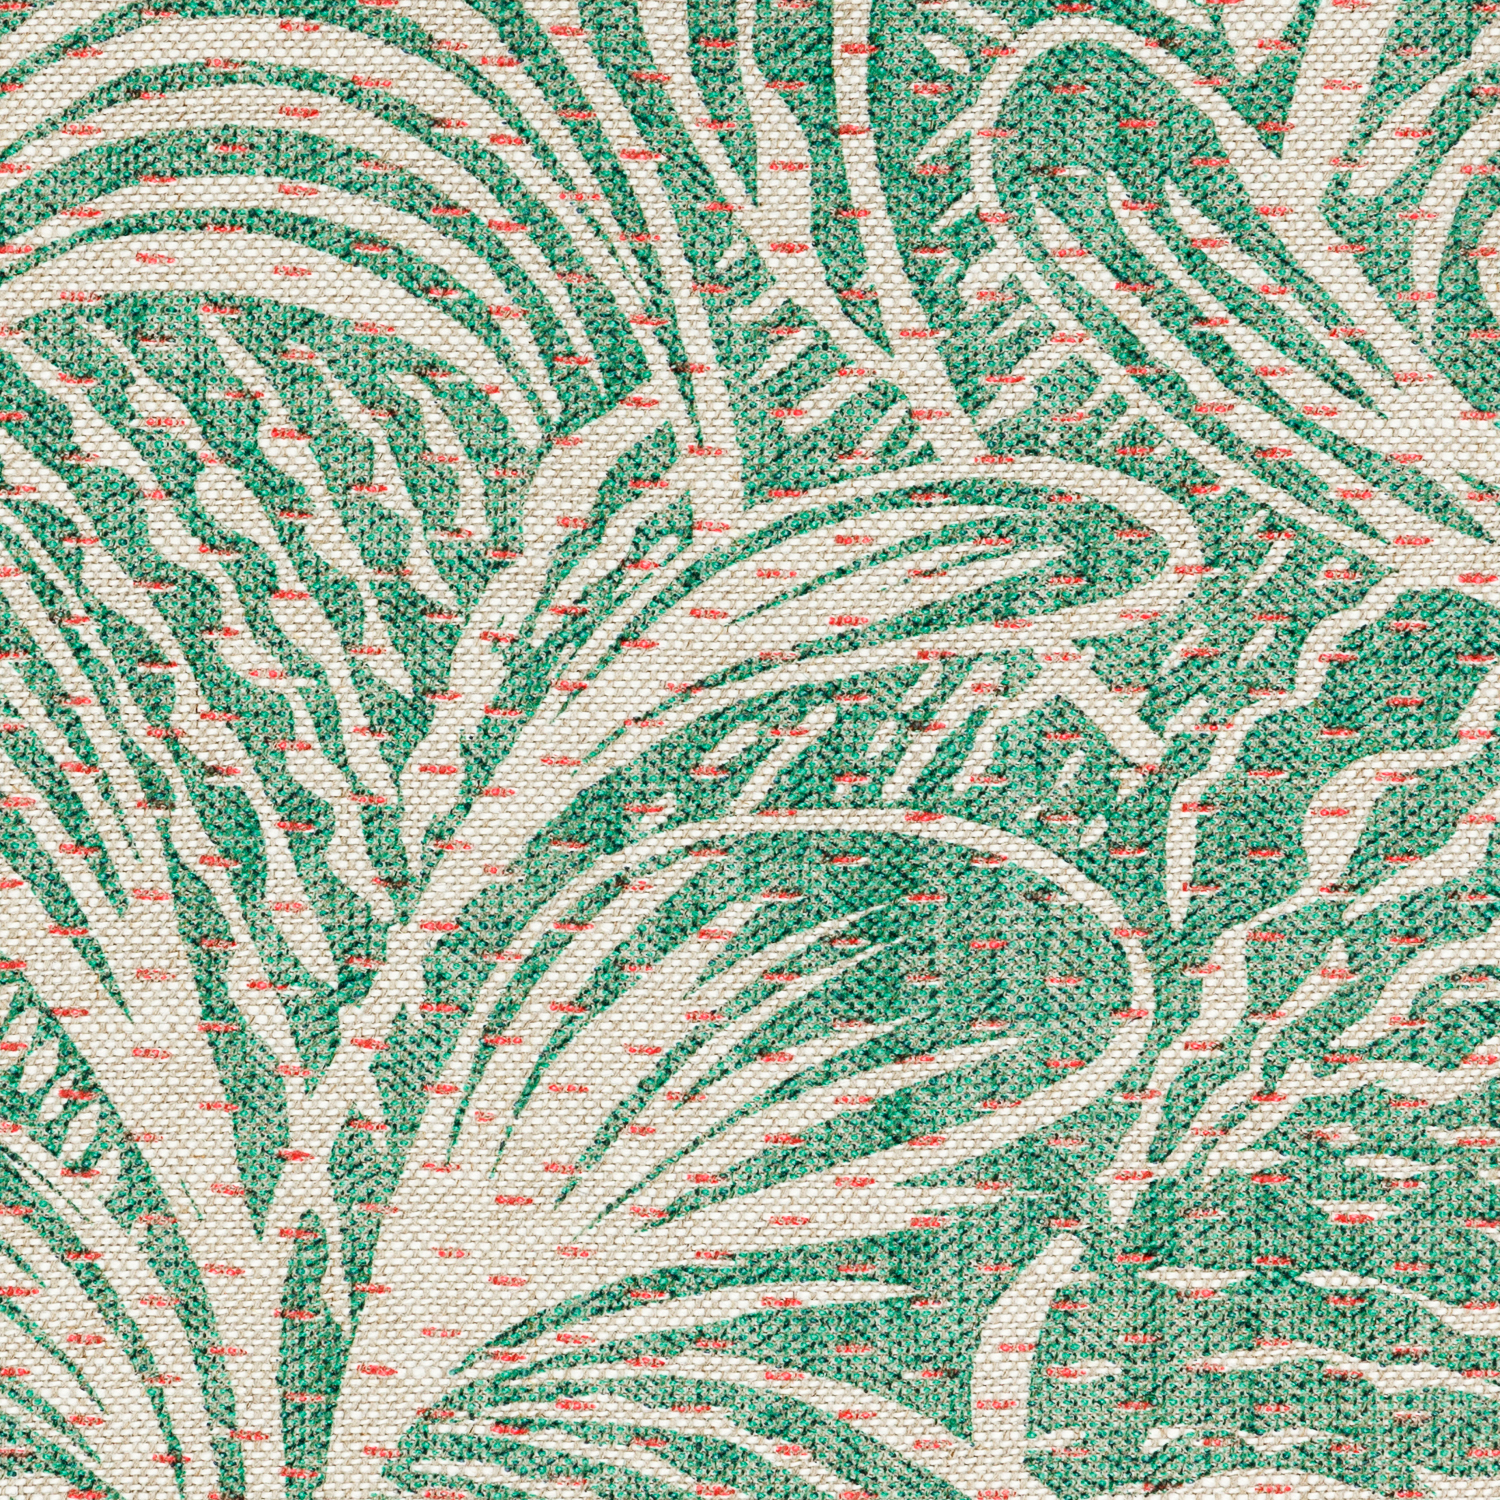 SAVE-004-Green-Savernake - Linen(1)